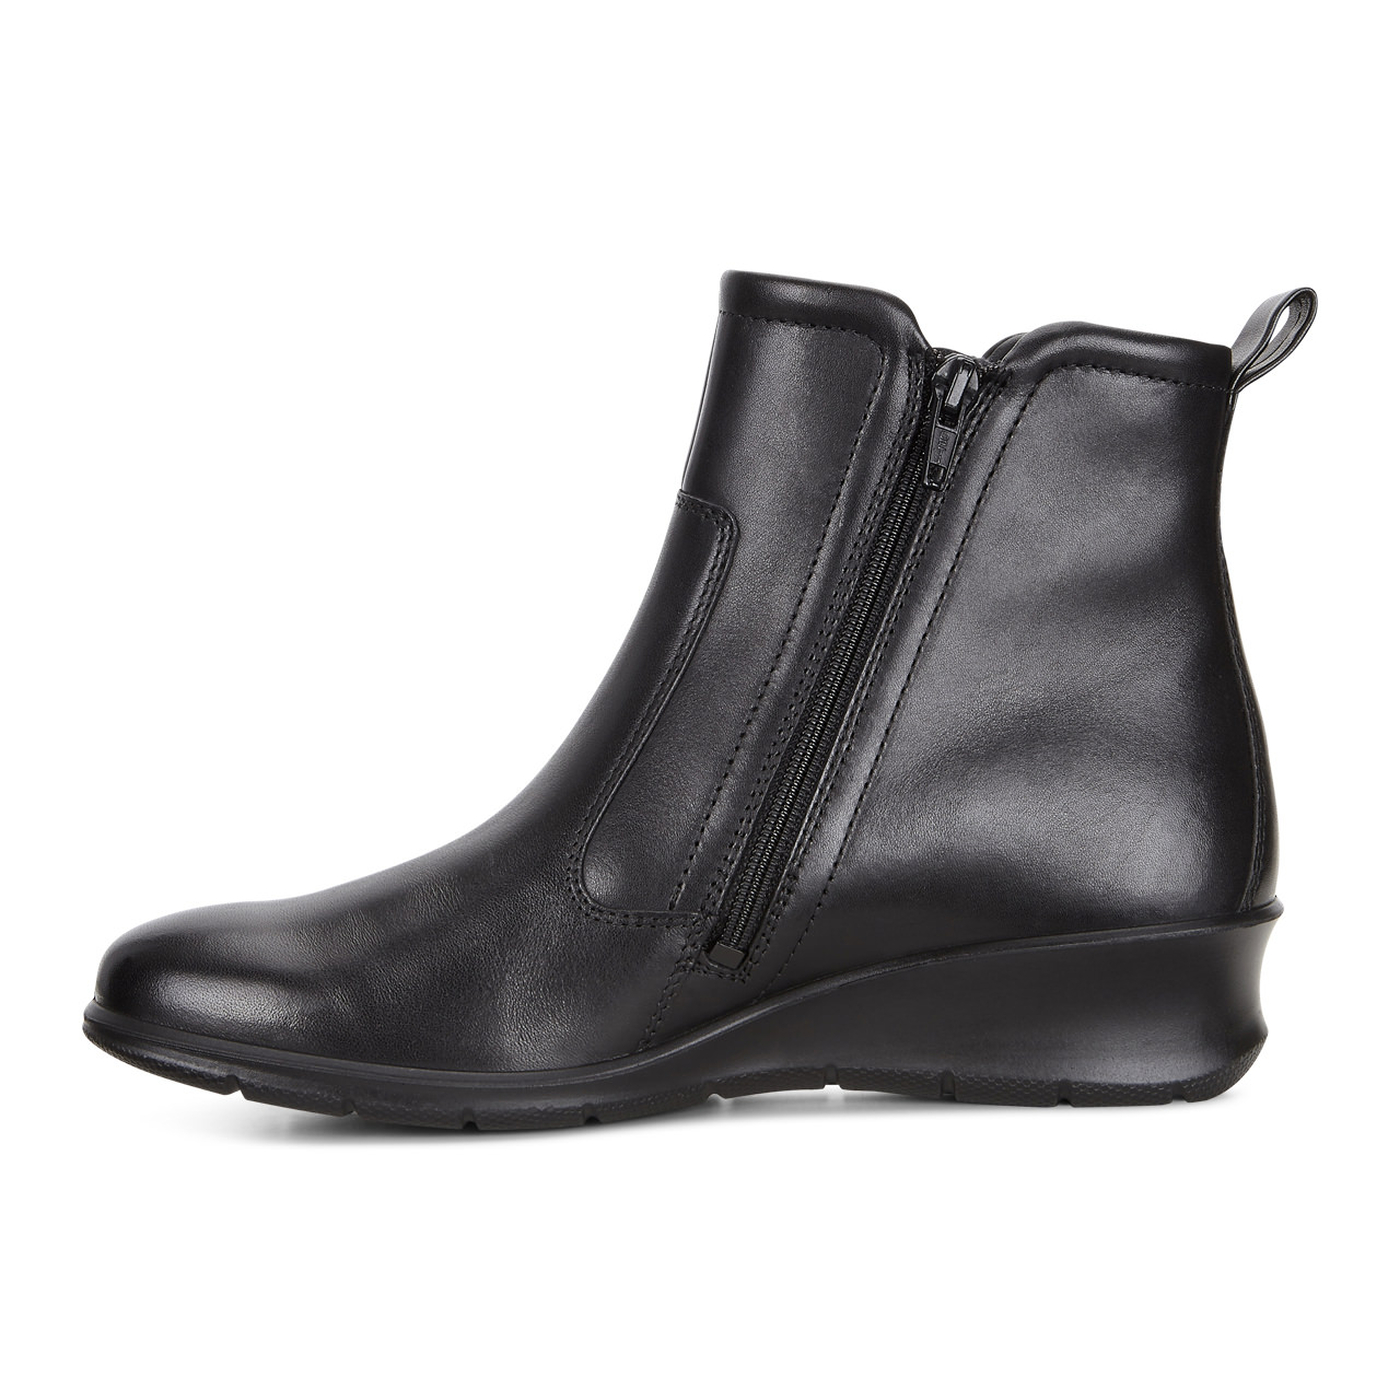 ECCO FELICIA Ankle Boot Zipup